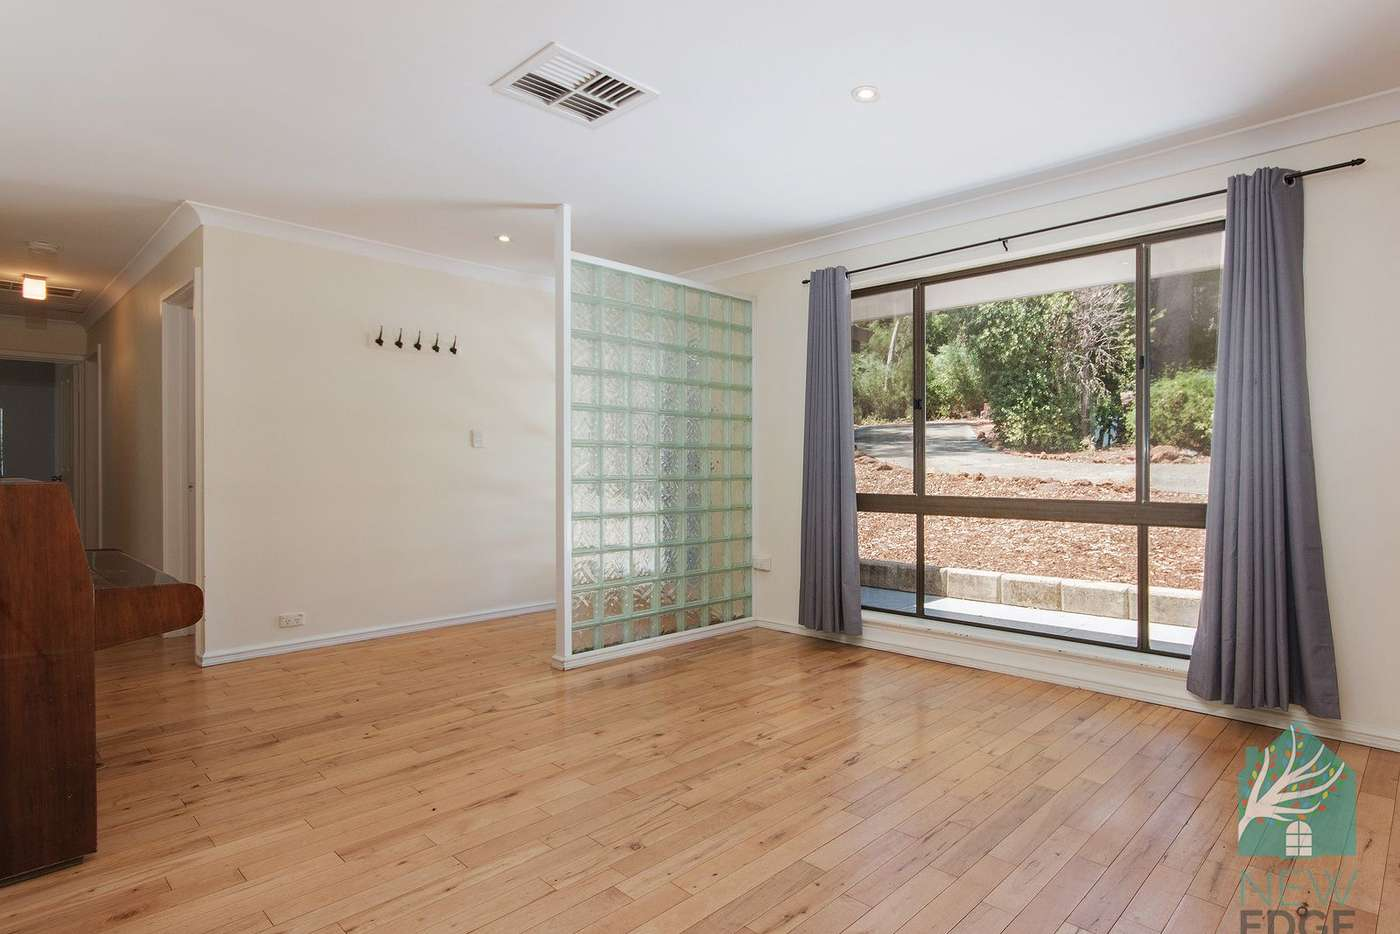 Fifth view of Homely house listing, 11 Wanliss Street, Jarrahdale WA 6124